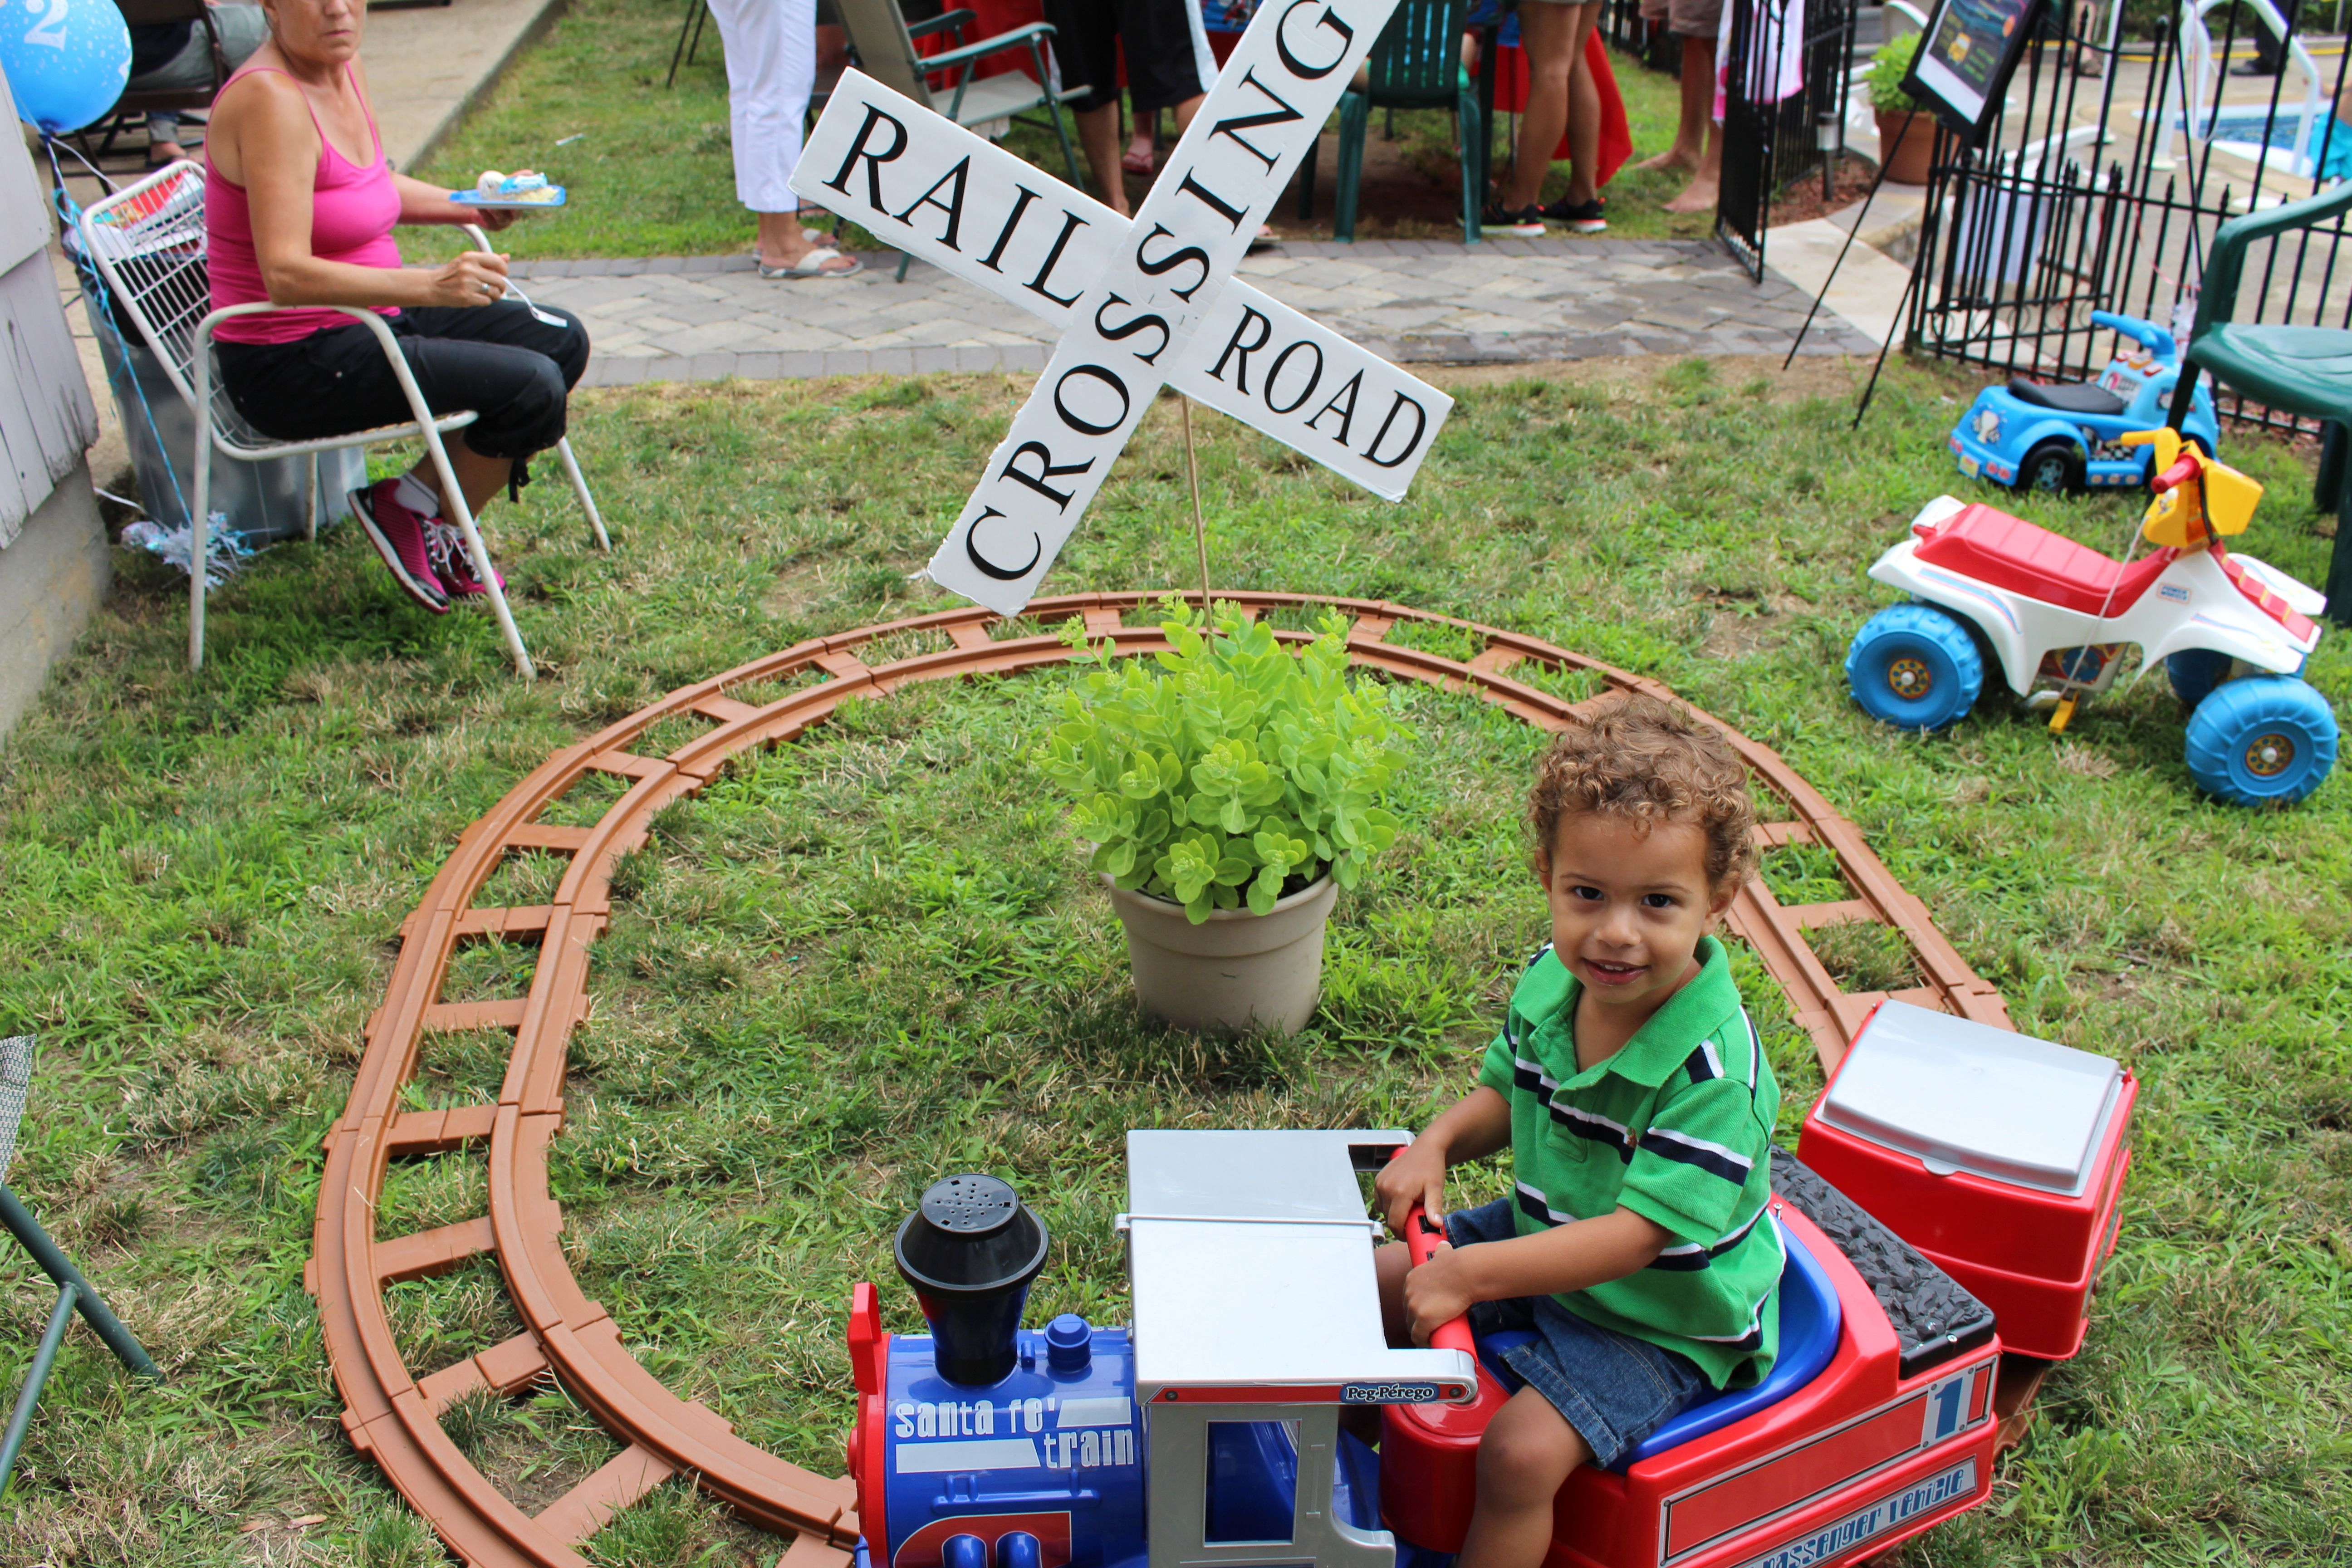 Rail Road crossing sign.  Took foam board and cut out letters and glued onto foam board.  Already had the train!